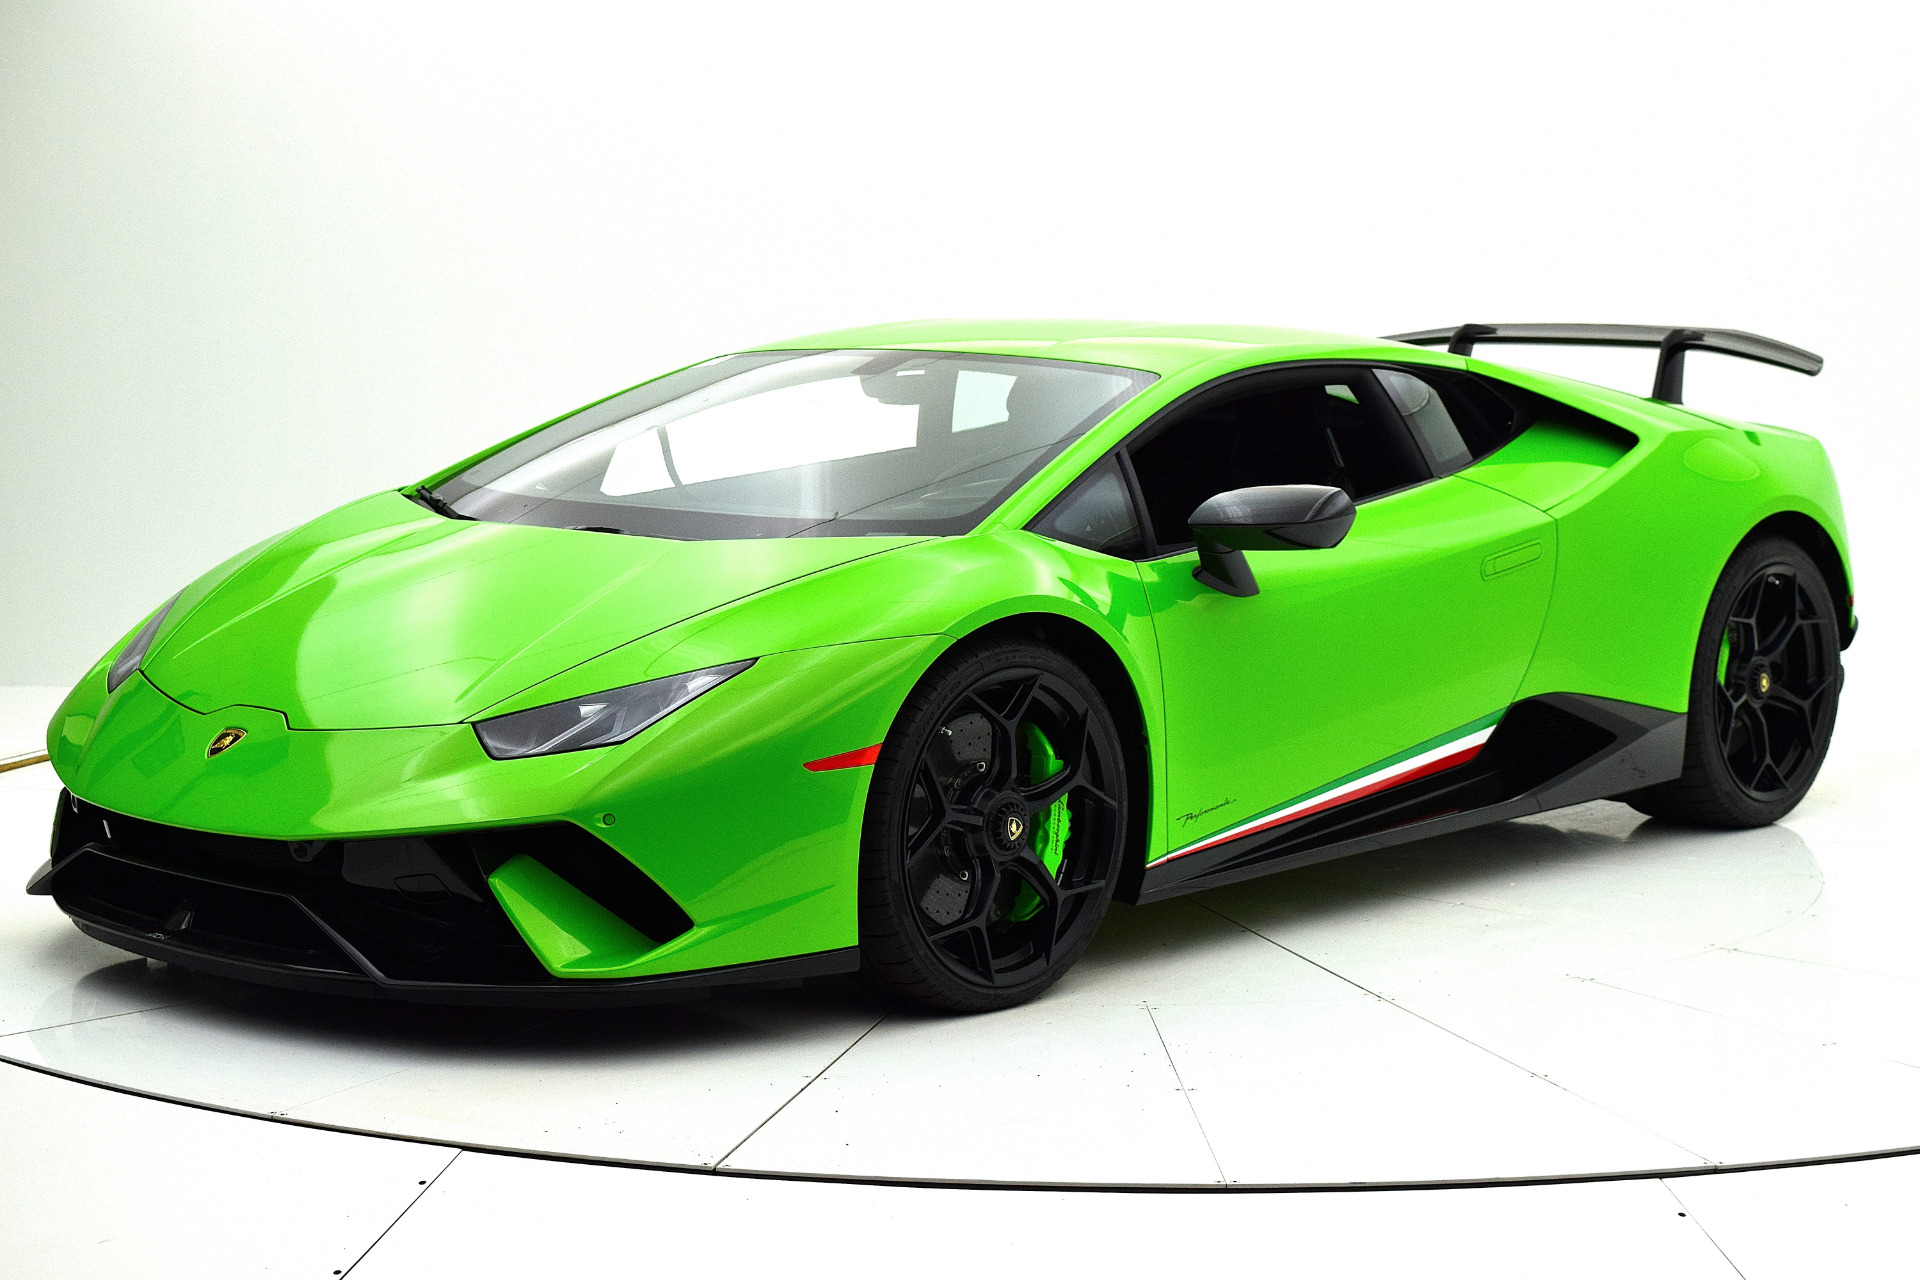 Best Images Of New Model 2018 Lamborghini Huracan Cars